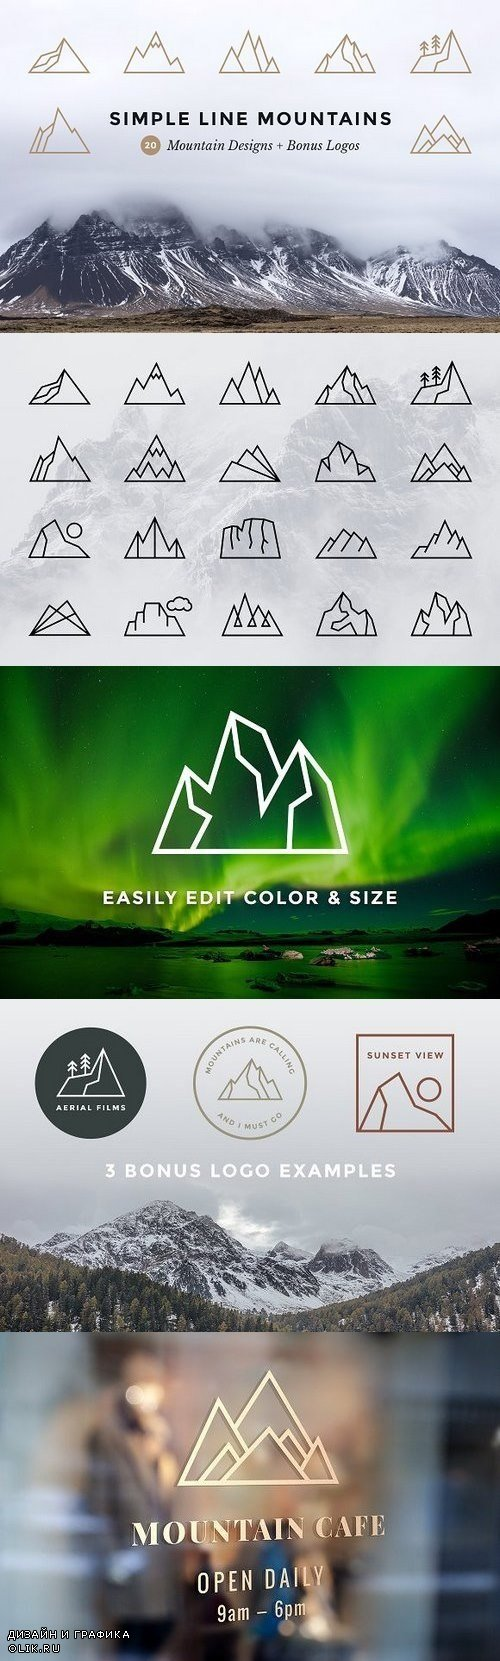 Simple Line Mountains + Bonus Logos 1250618